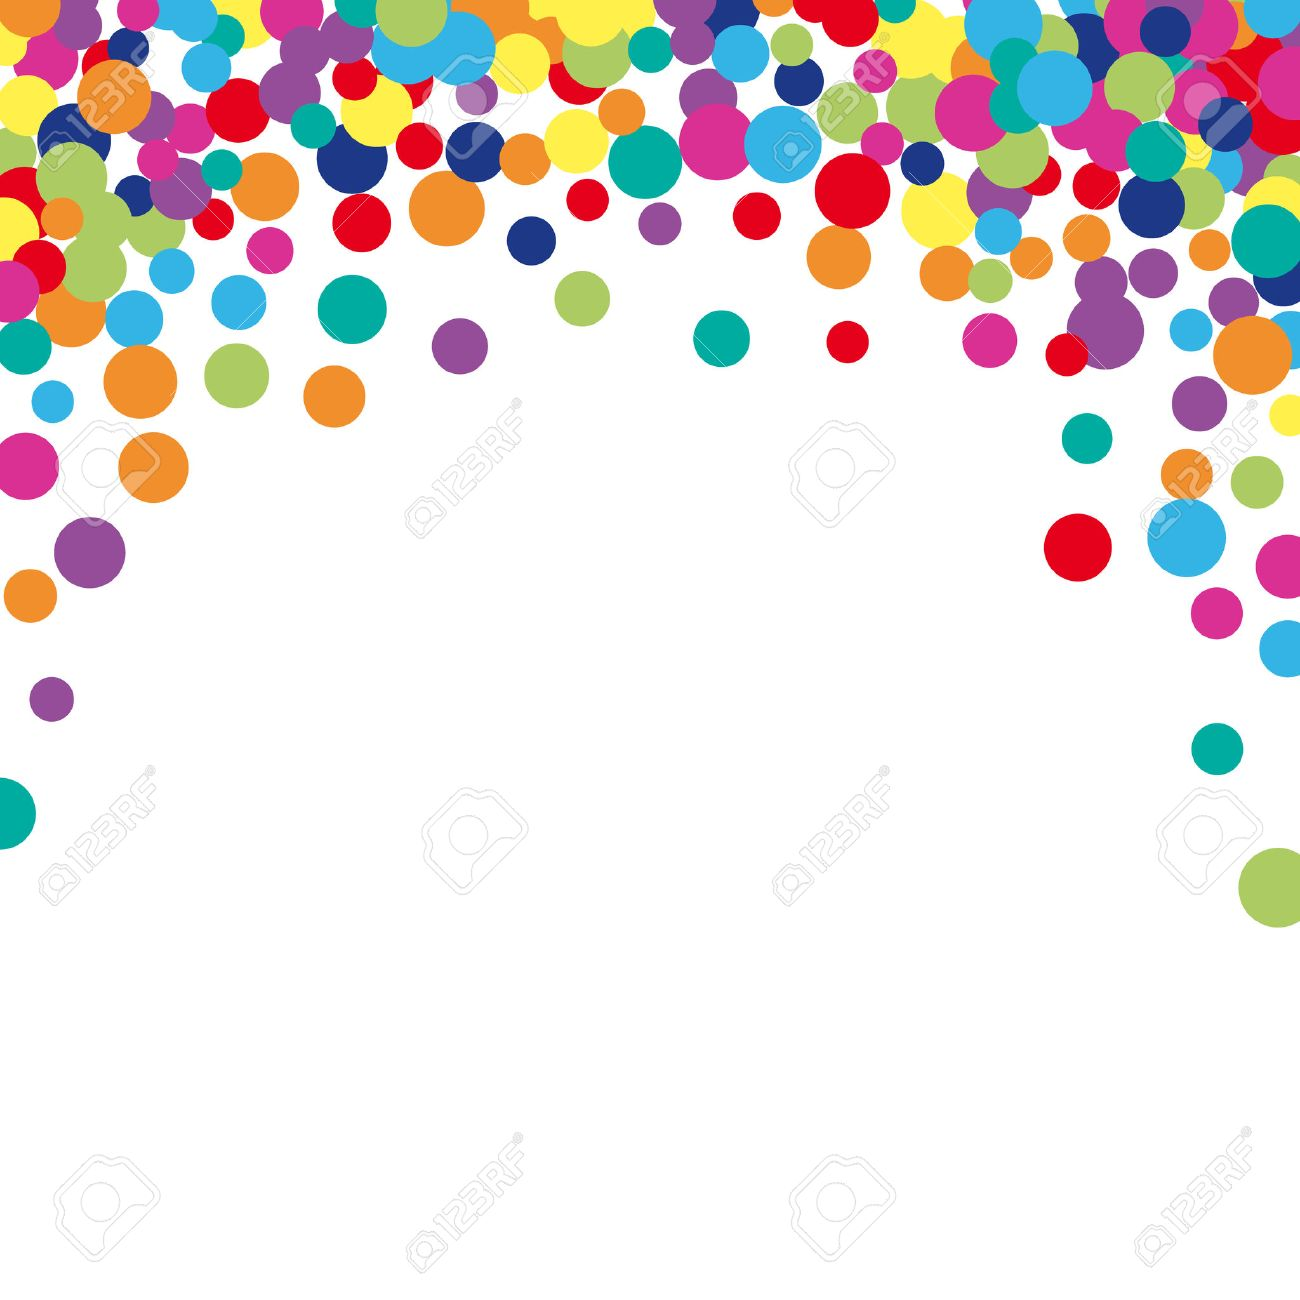 colorful abstract spot background vector illustration for bright